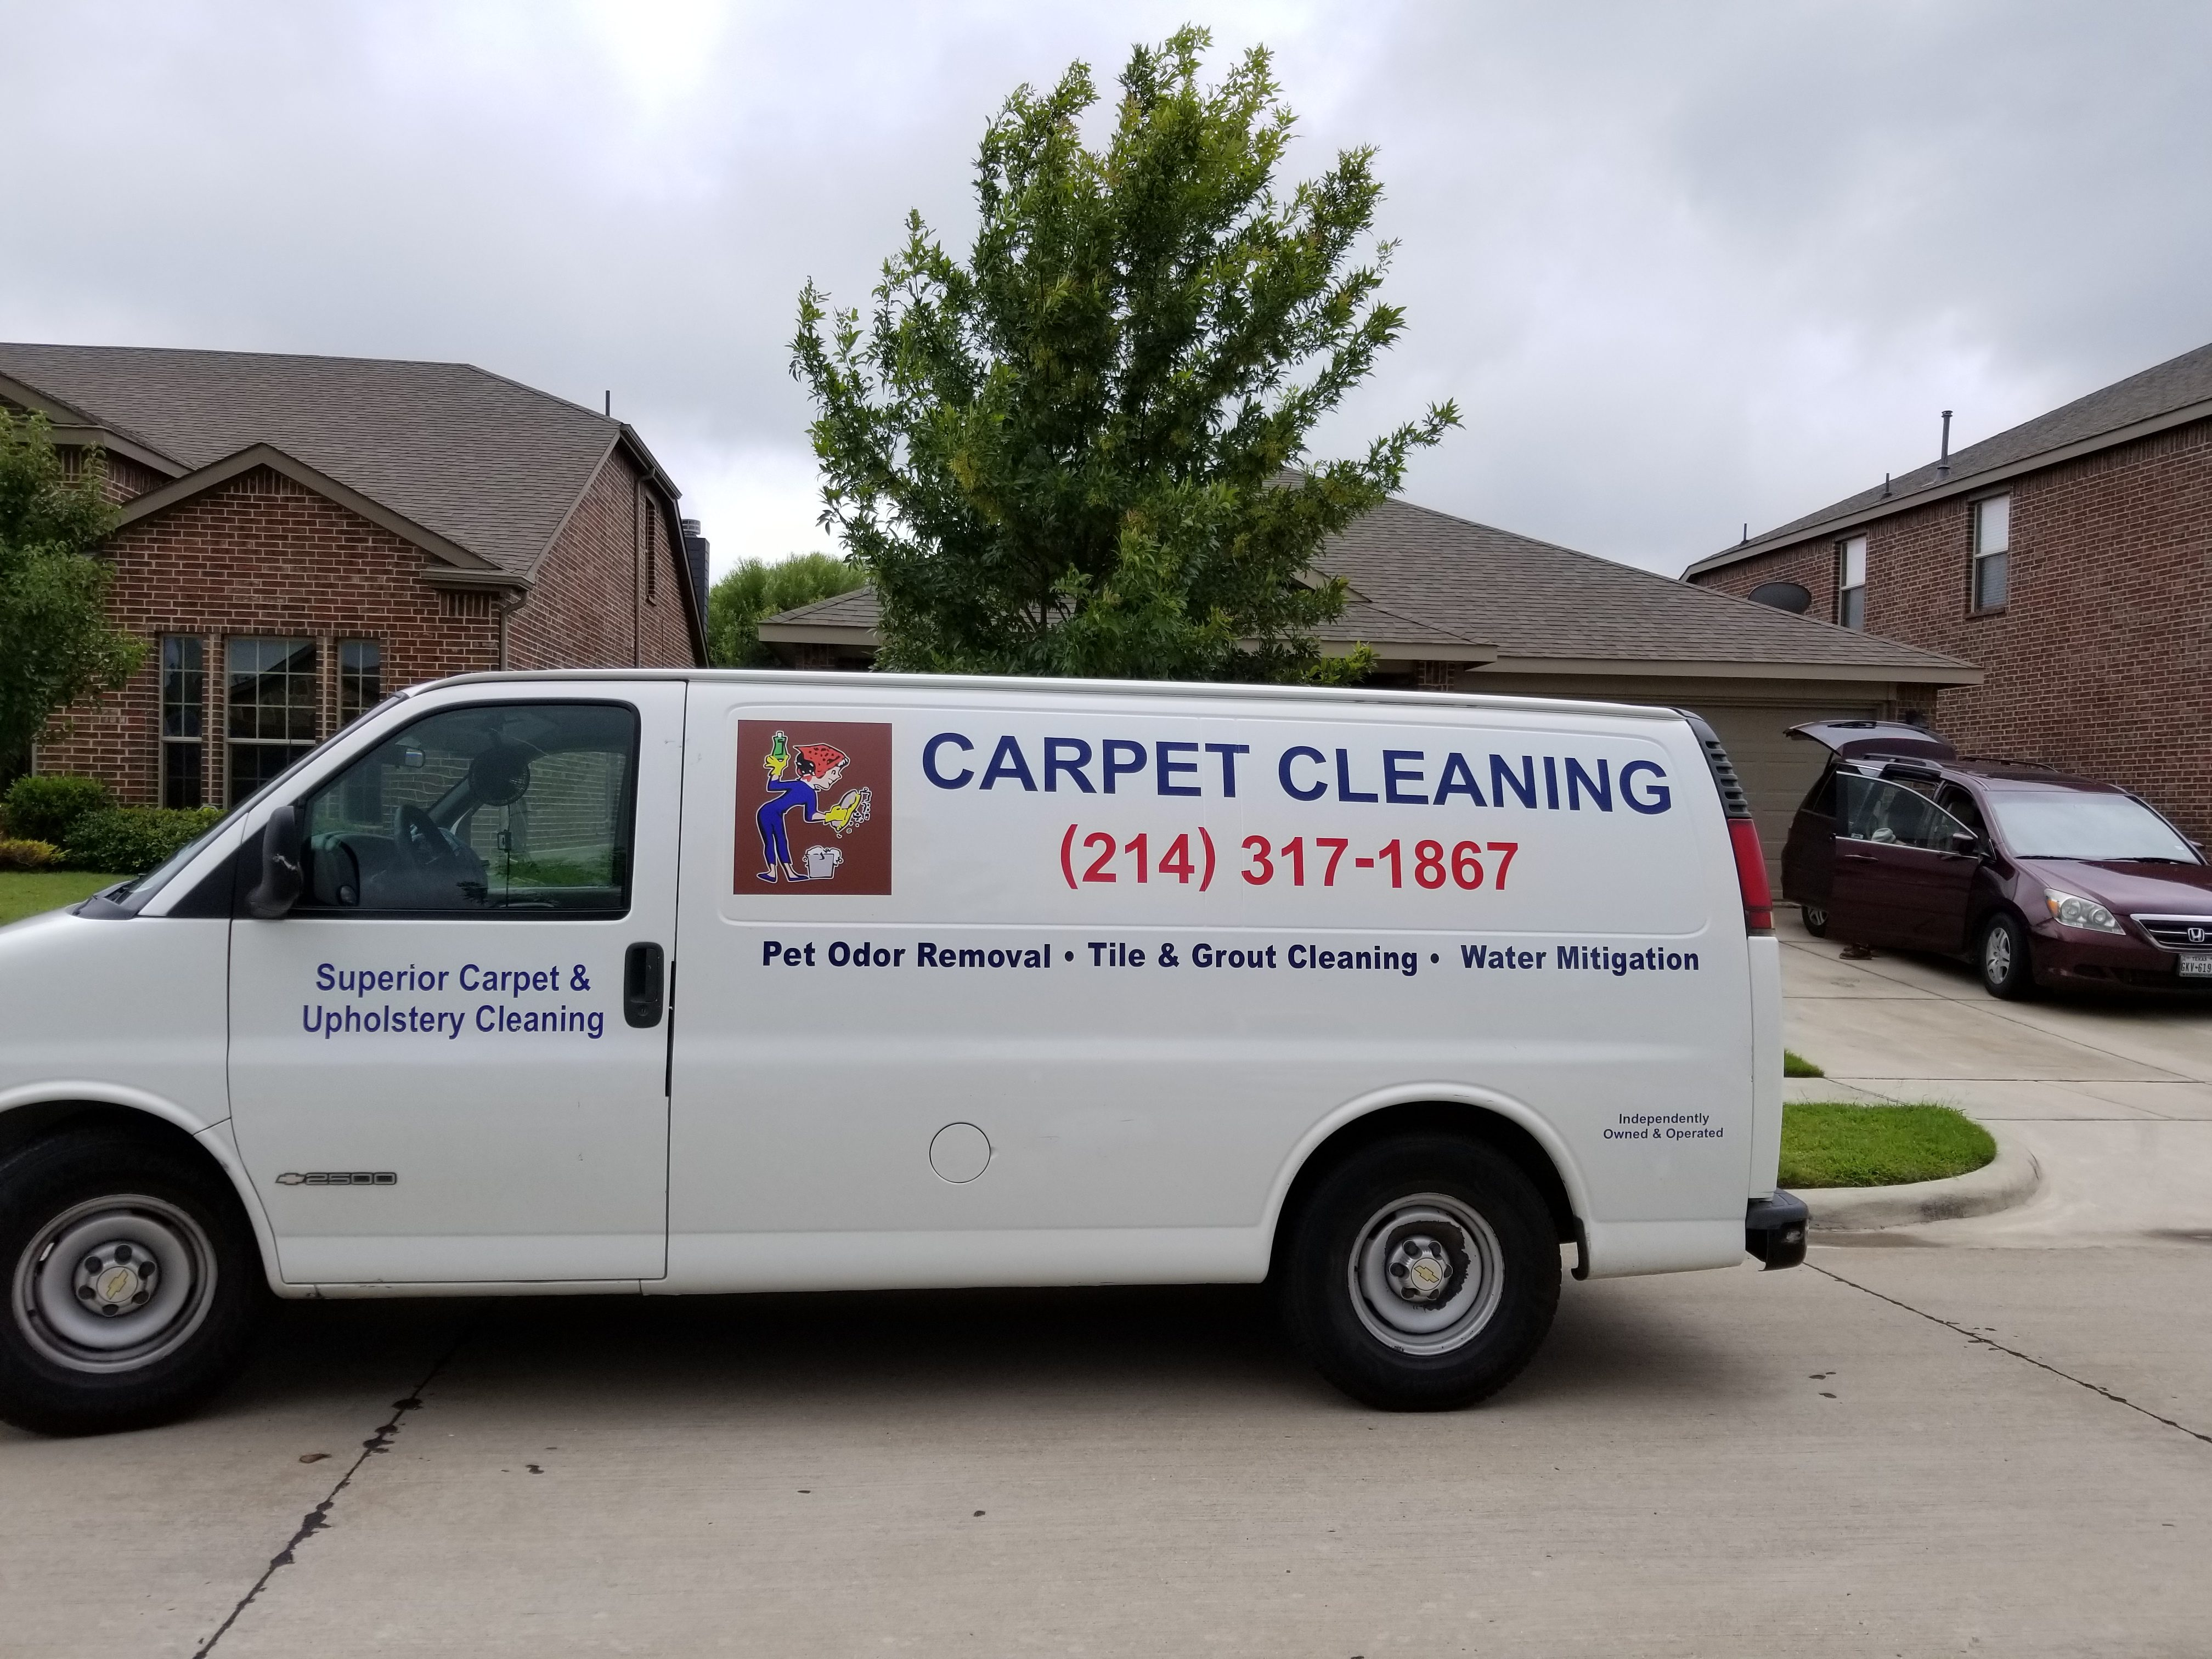 Carpet Cleaning Service in Dallas Tx.